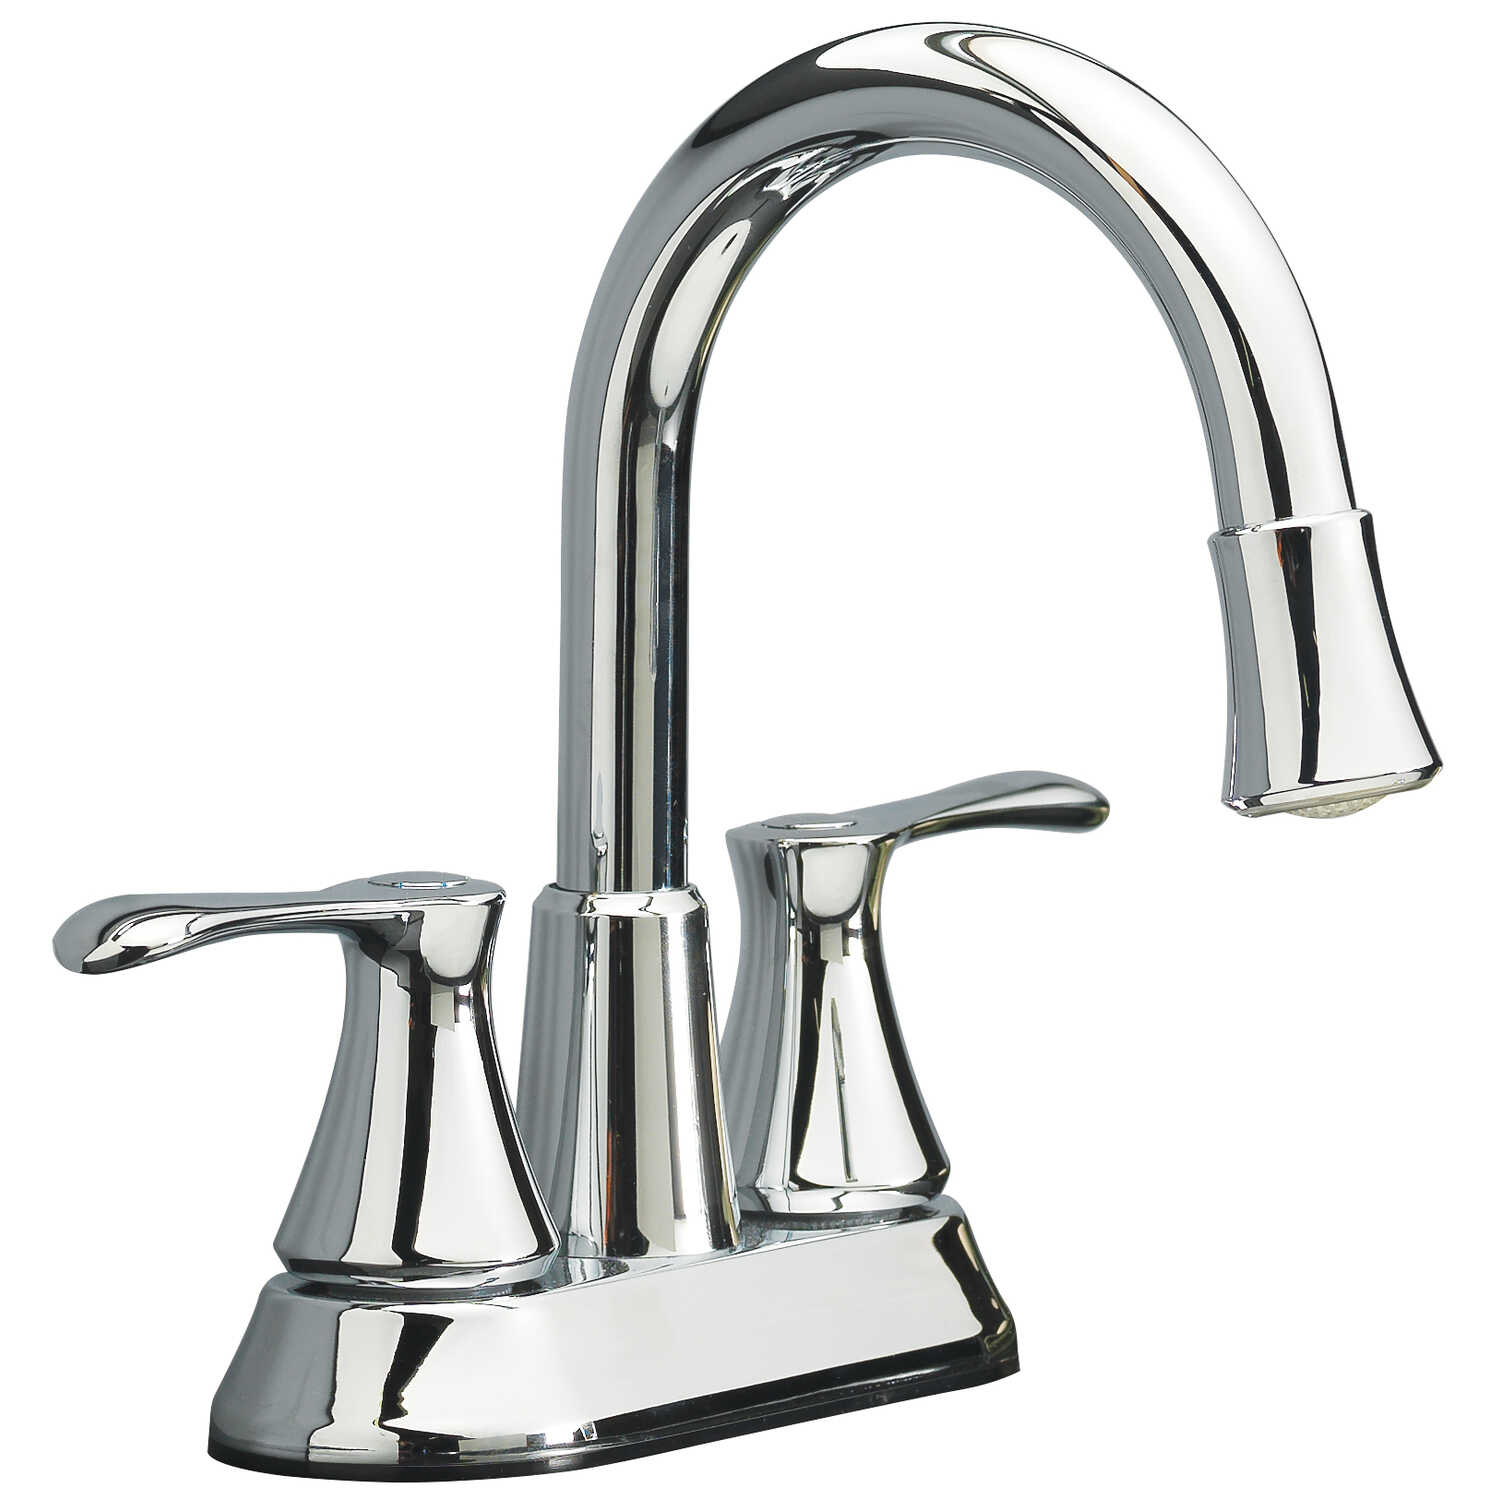 OakBrook  Doria  Doria  Two Handle LED  Lavatory Pop-Up Faucet  4 in. Chrome